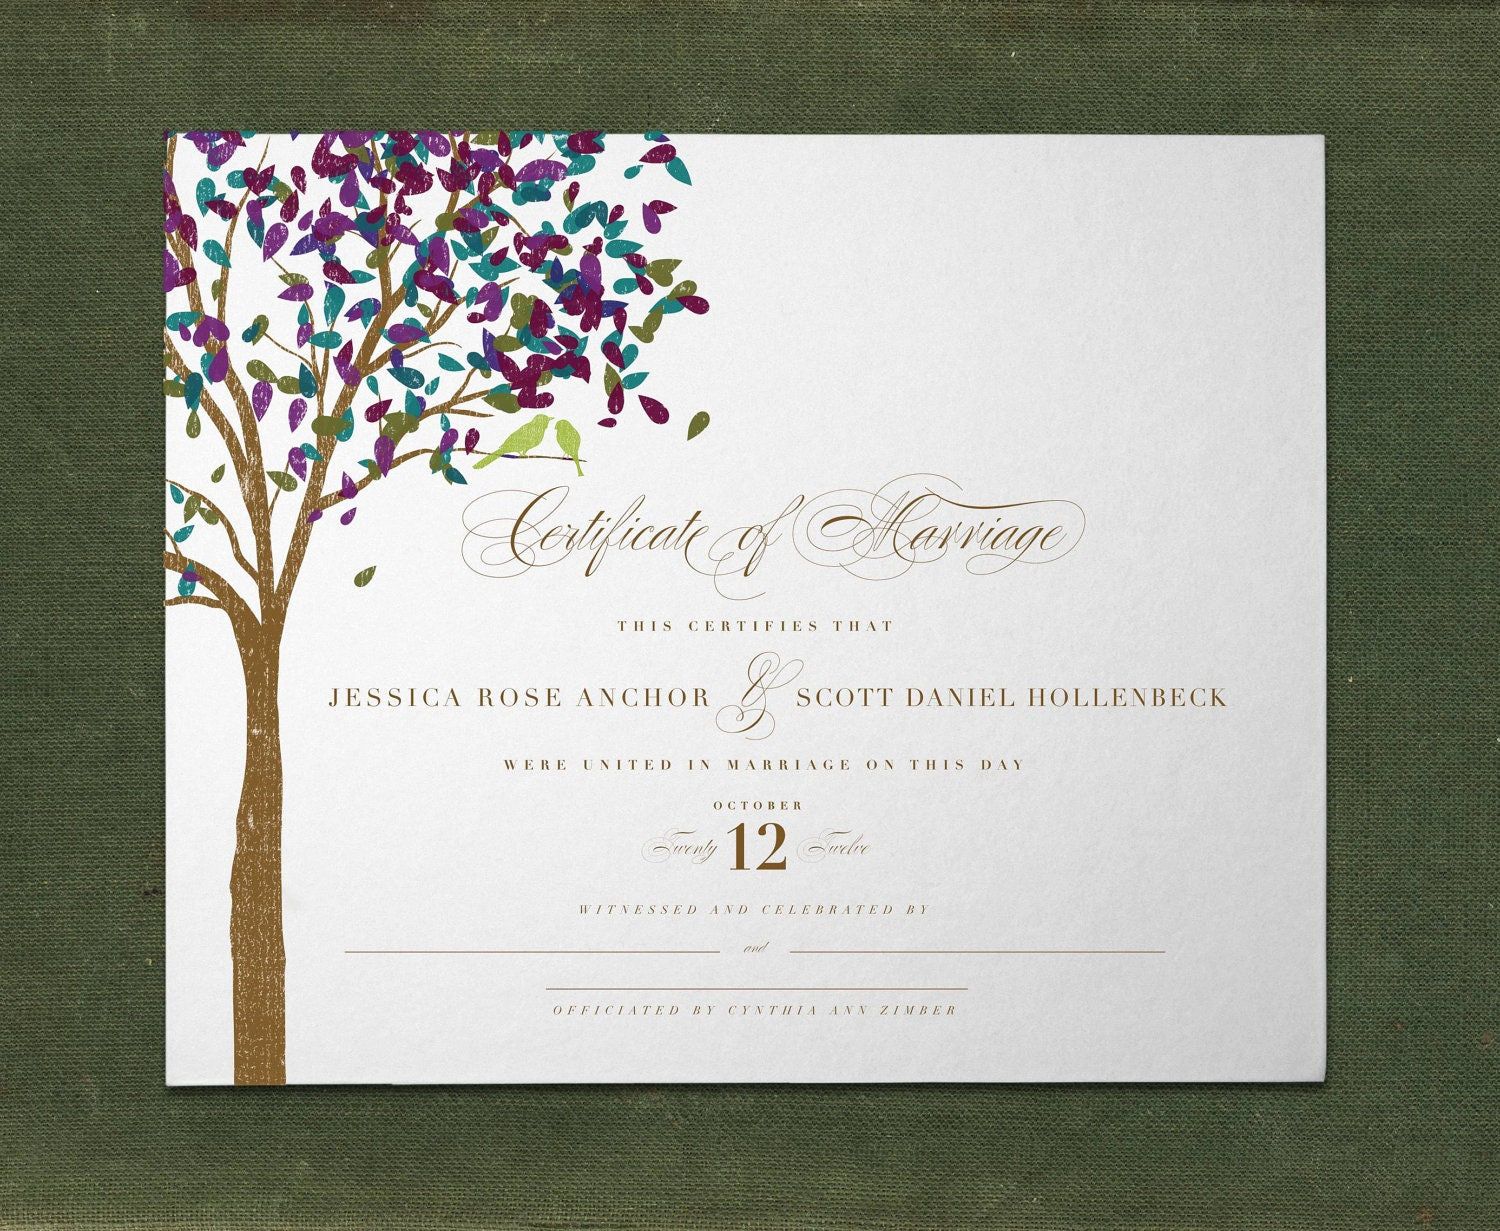 Unique Custom Marriage Certificate By Sarahrusin On Etsy